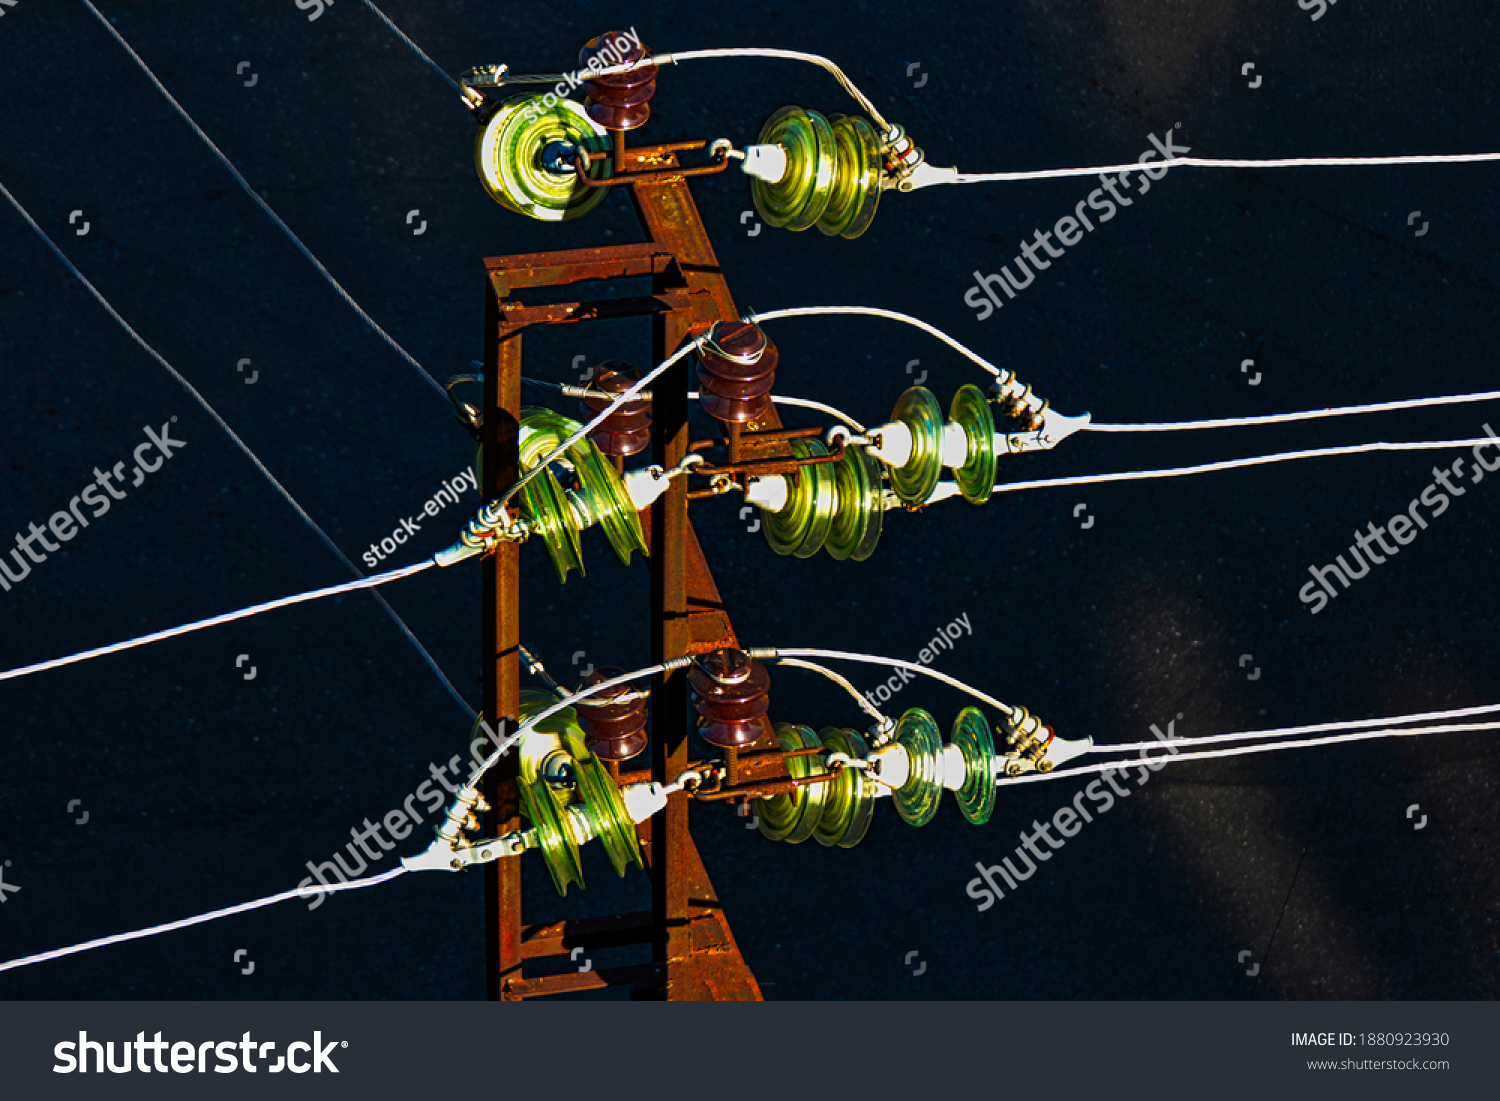 Glass electric insulators mounted on wires of old rusty powertower view from above